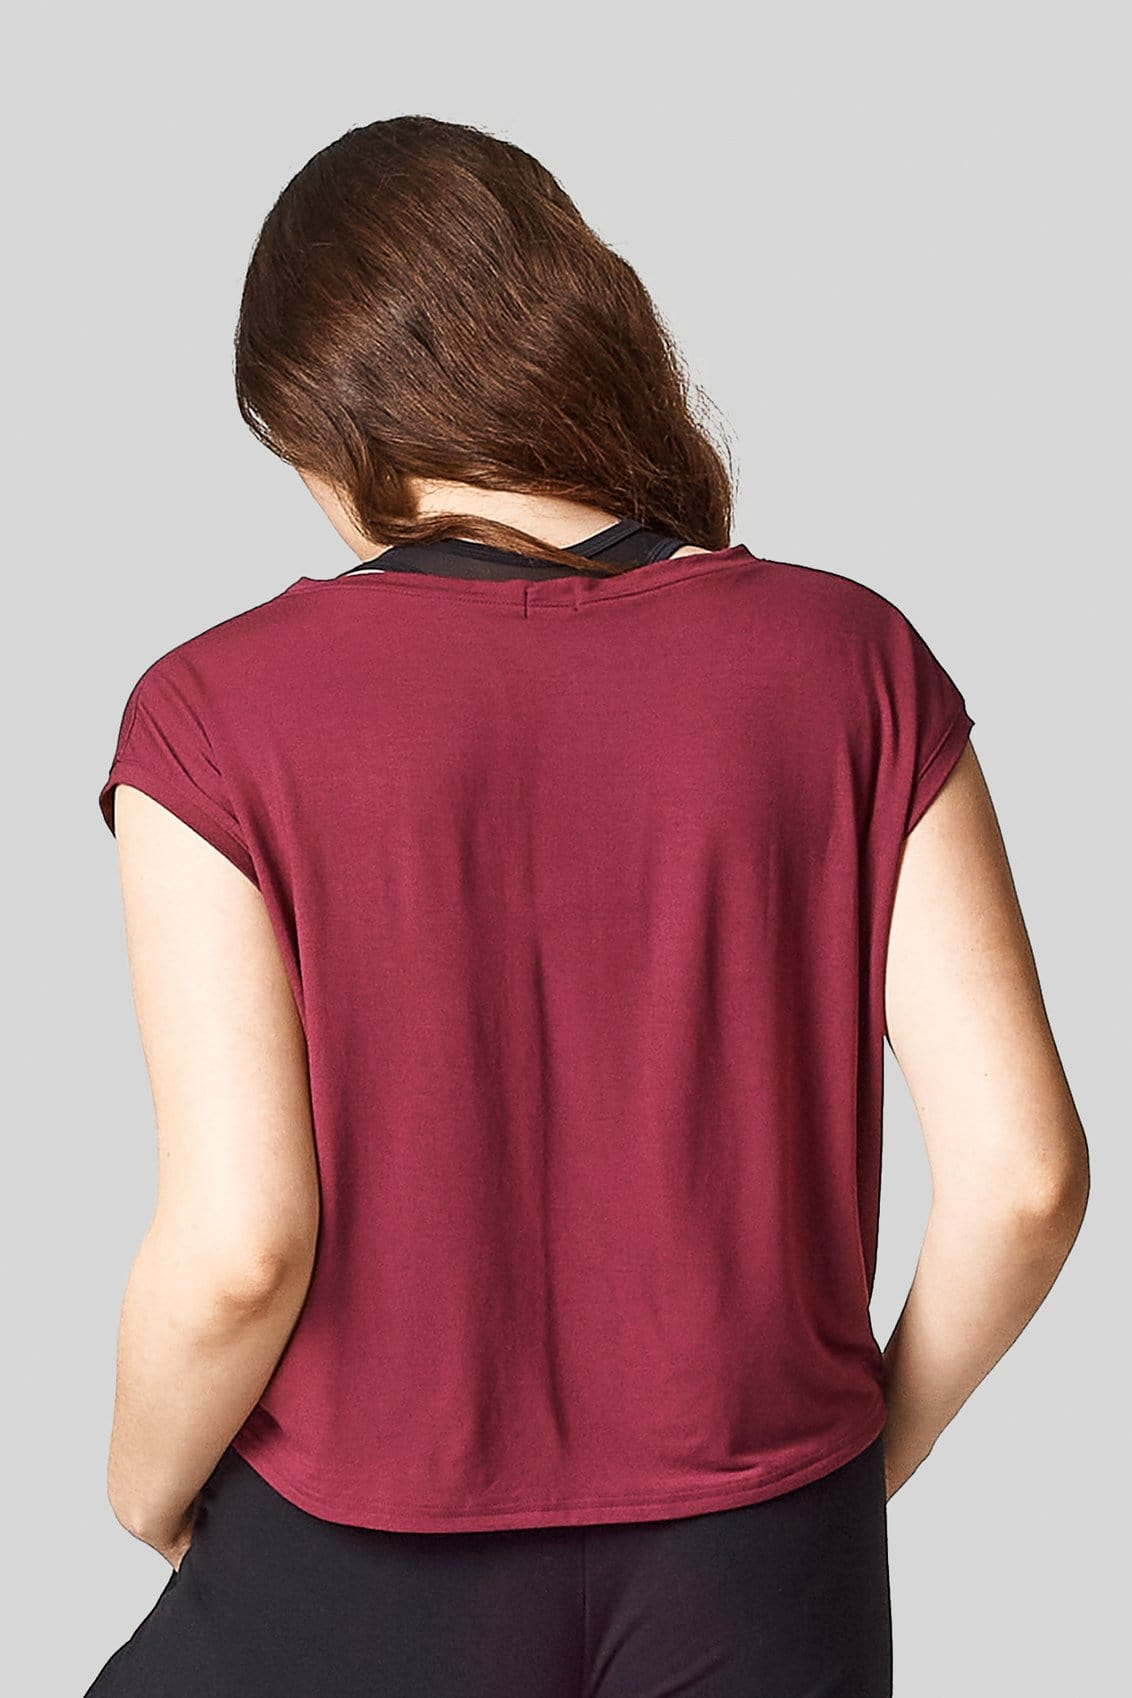 A photo shows the back view of red boxy tee shirt.